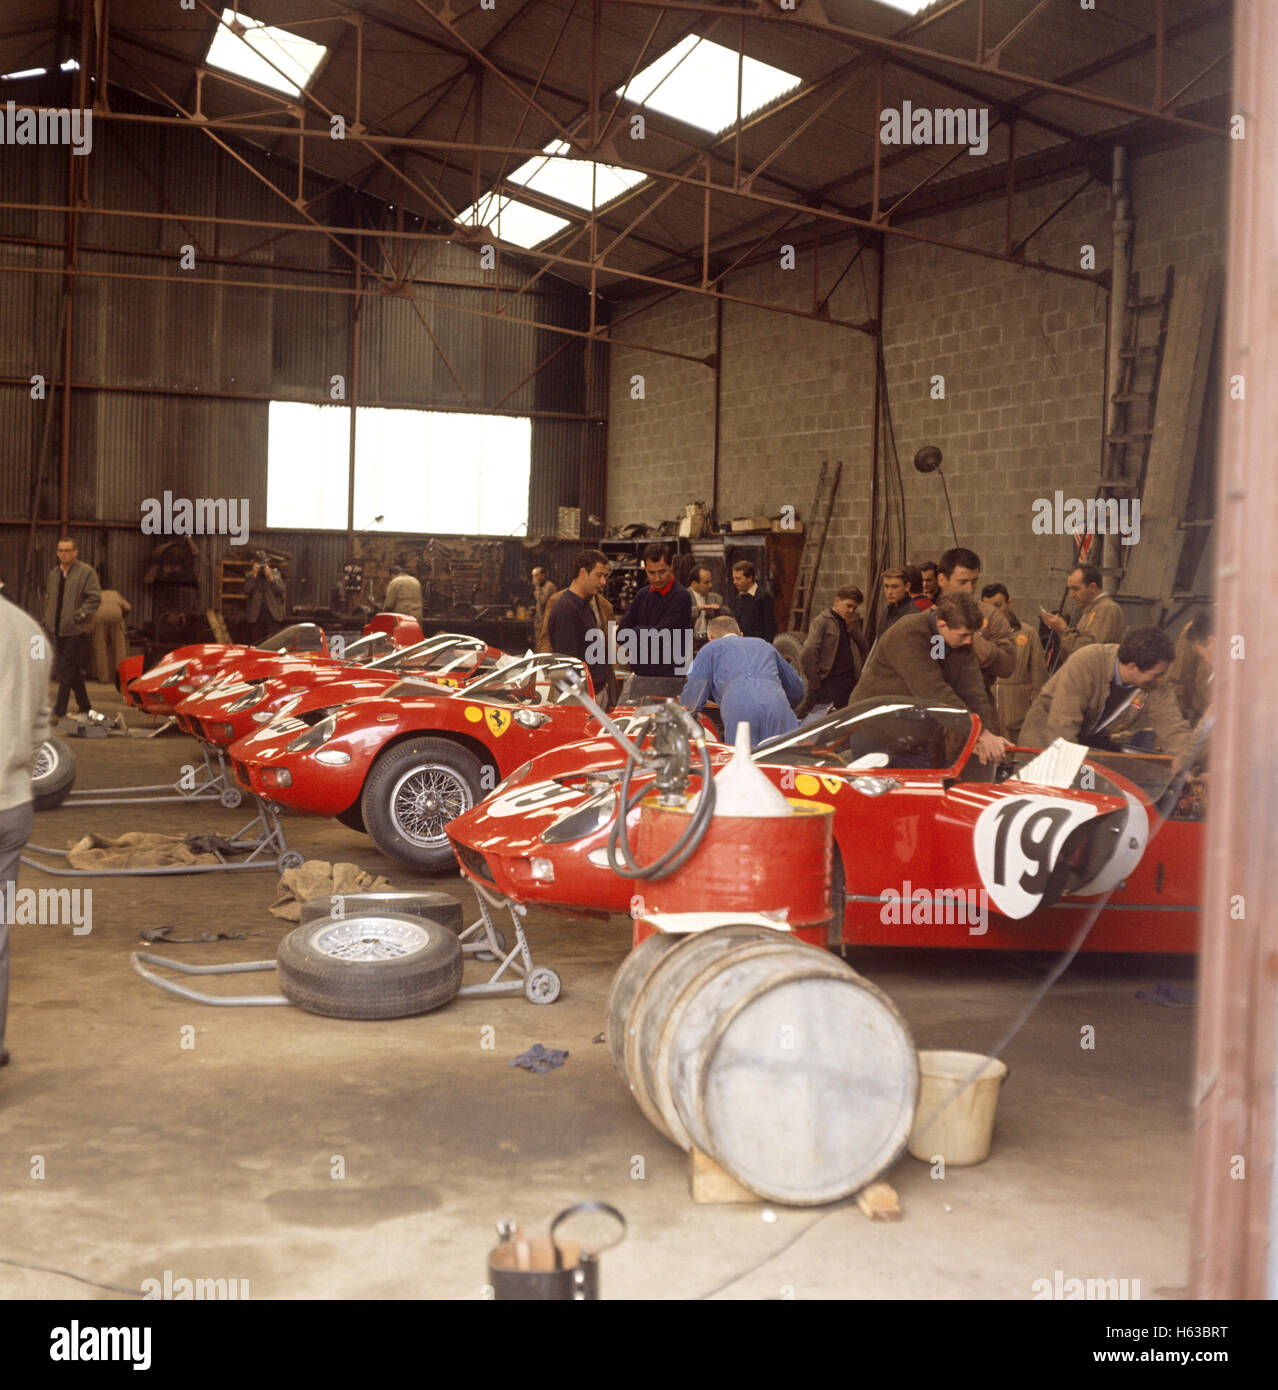 1963 ferrari 250ps le mans garage stock photo royalty for Garage automobile le mans